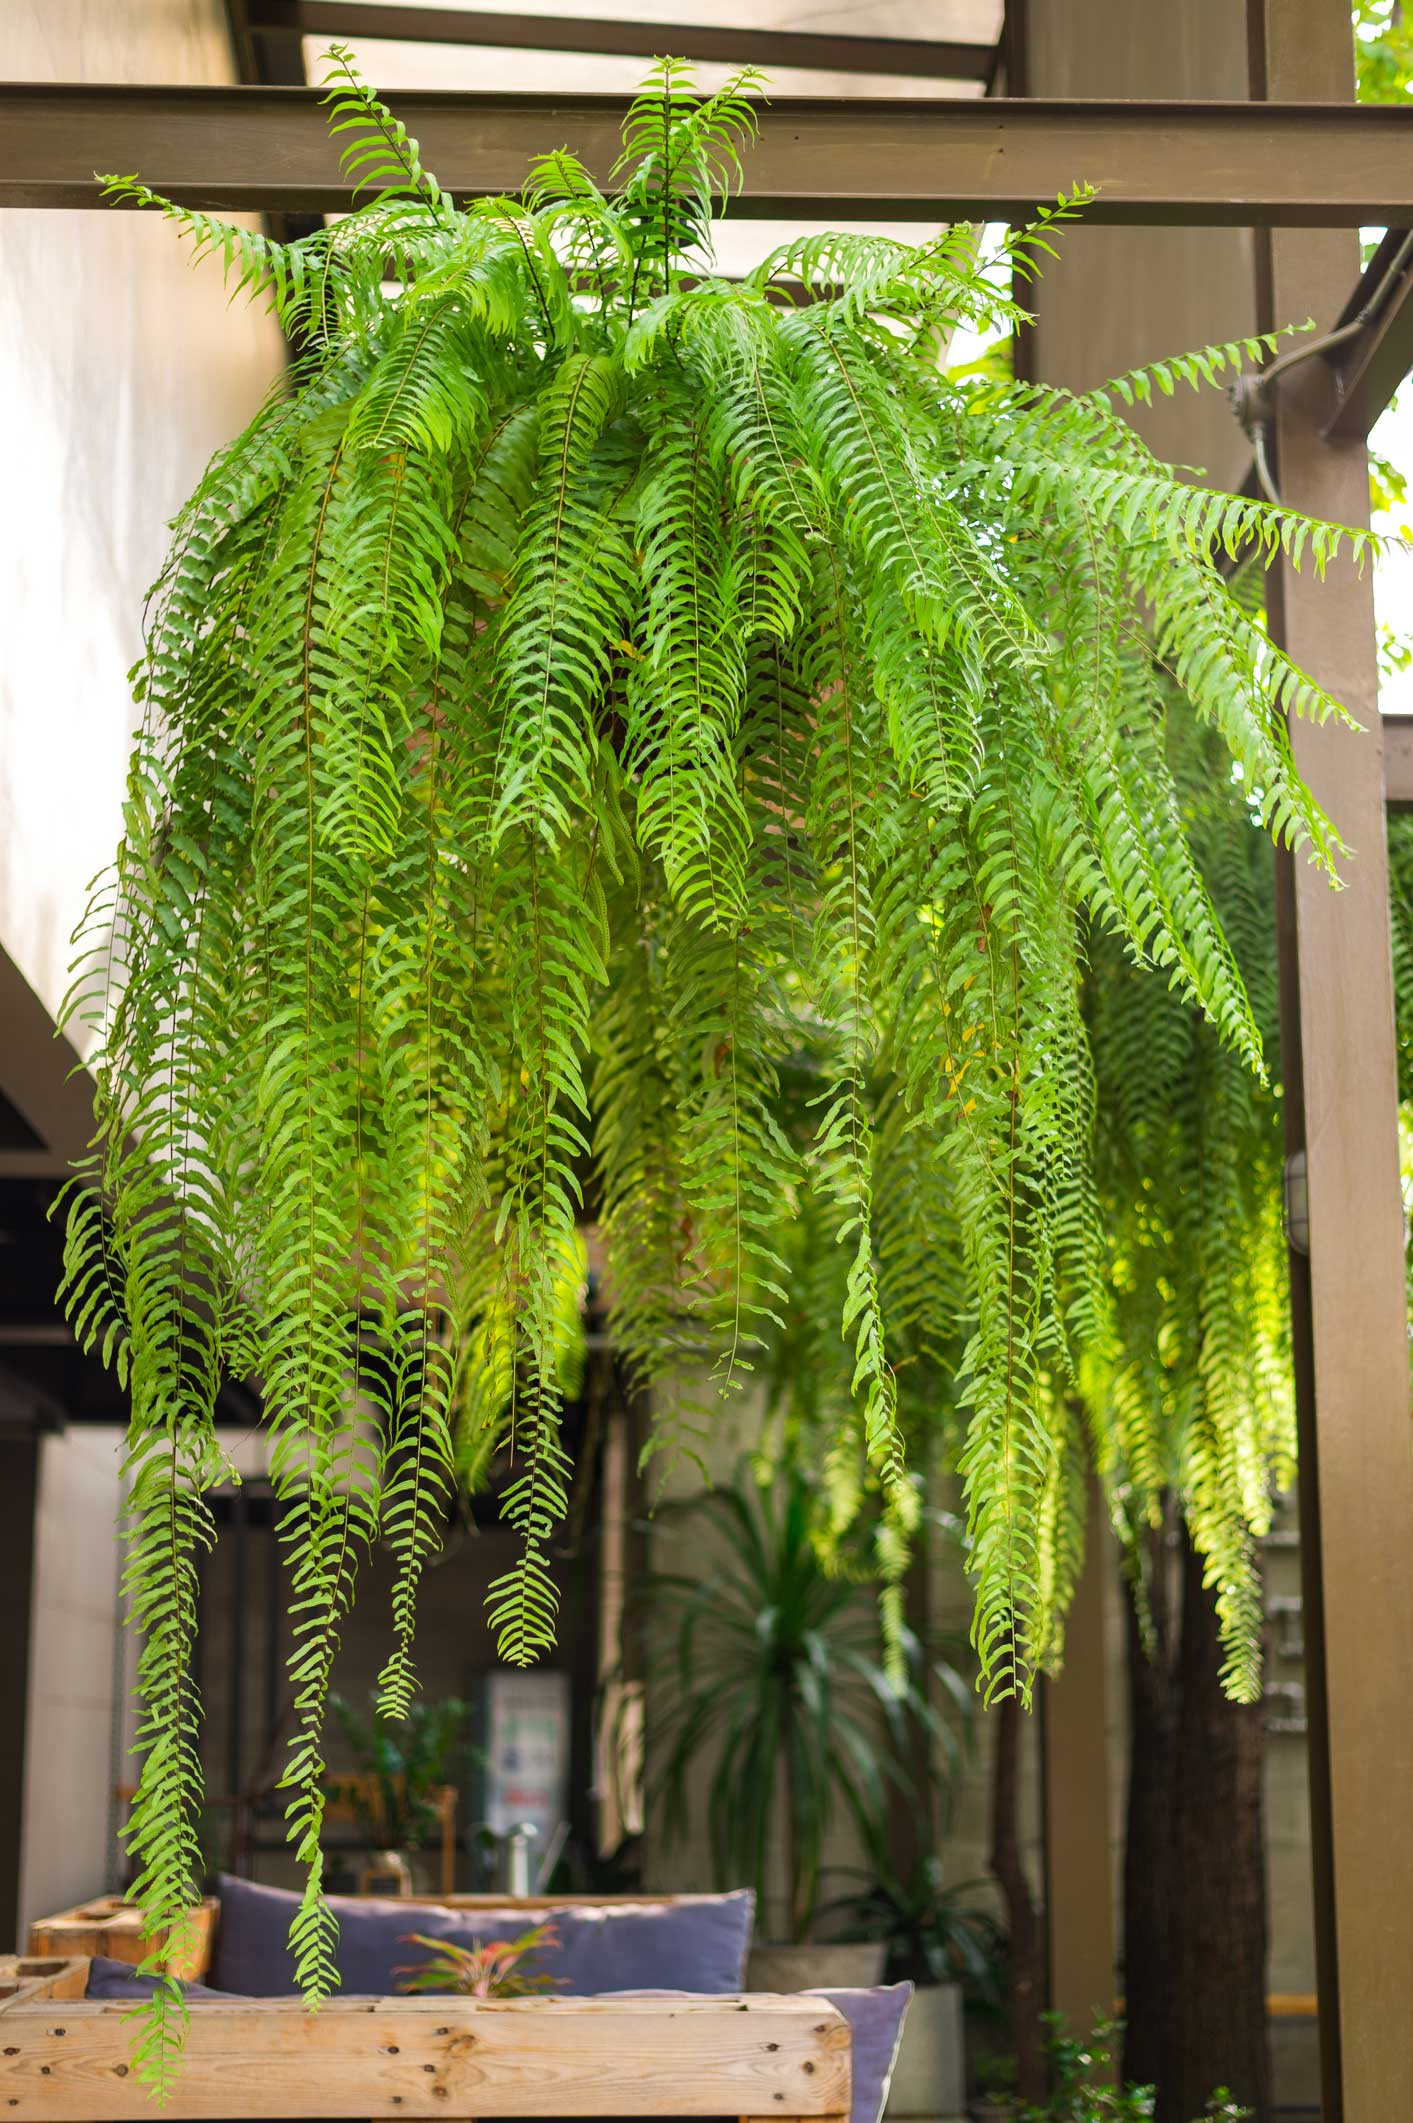 5. Boston Fern